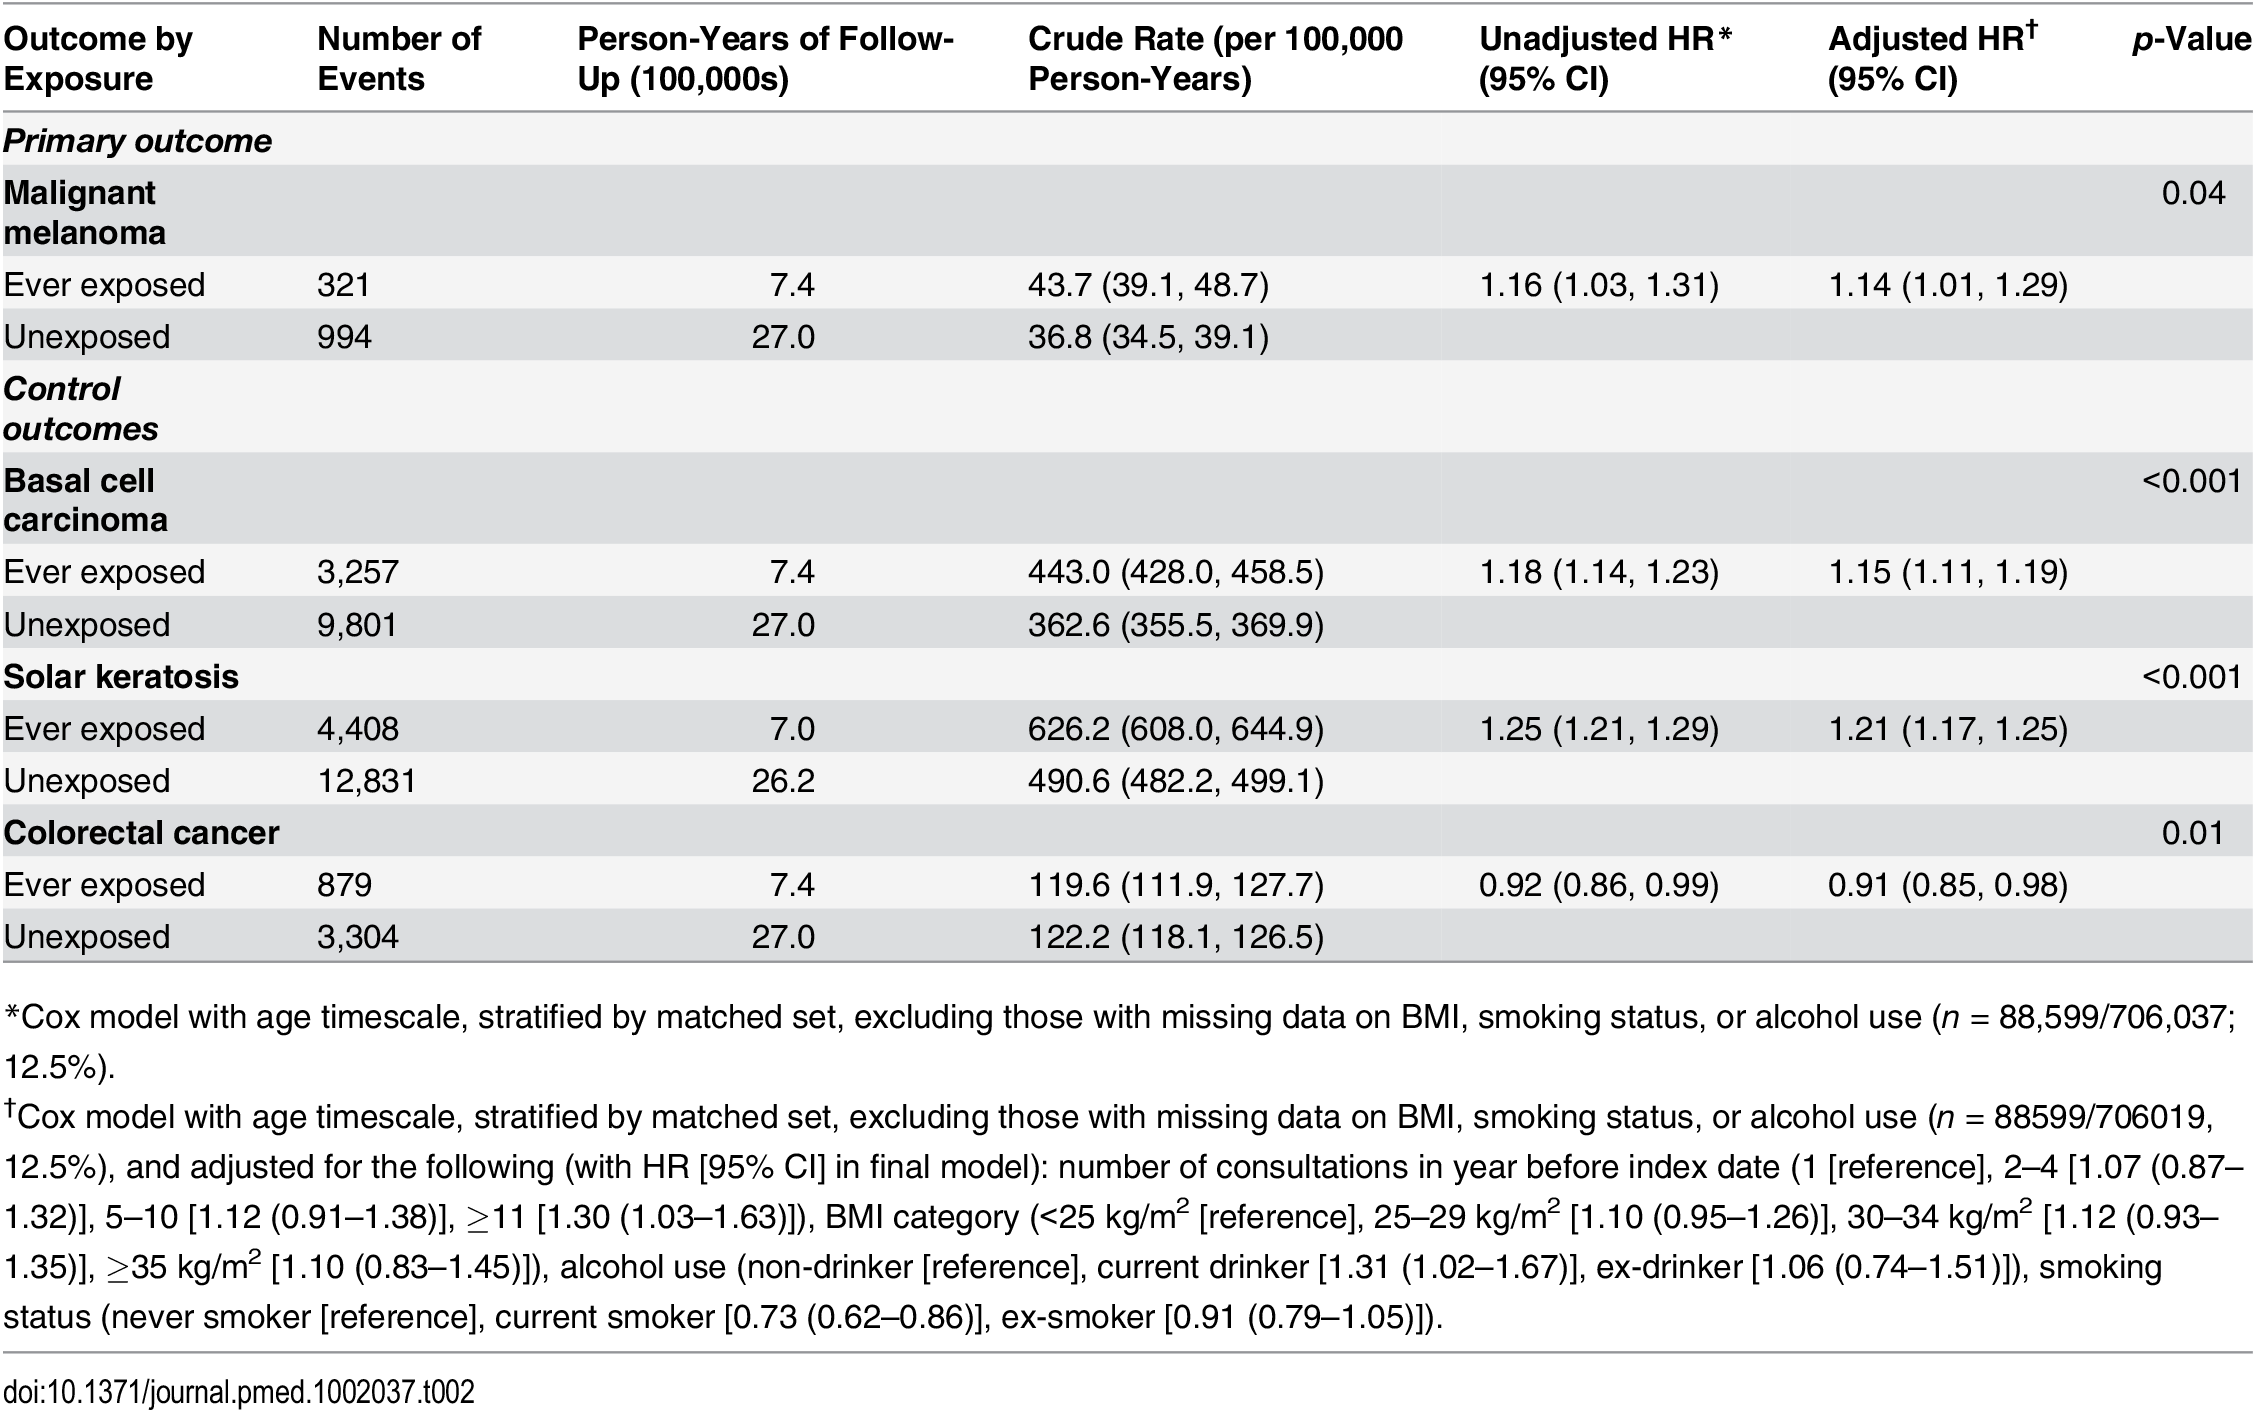 Crude rate for malignant melanoma and control outcomes by exposure to PDE5 inhibitors, and unadjusted and adjusted hazard ratios.